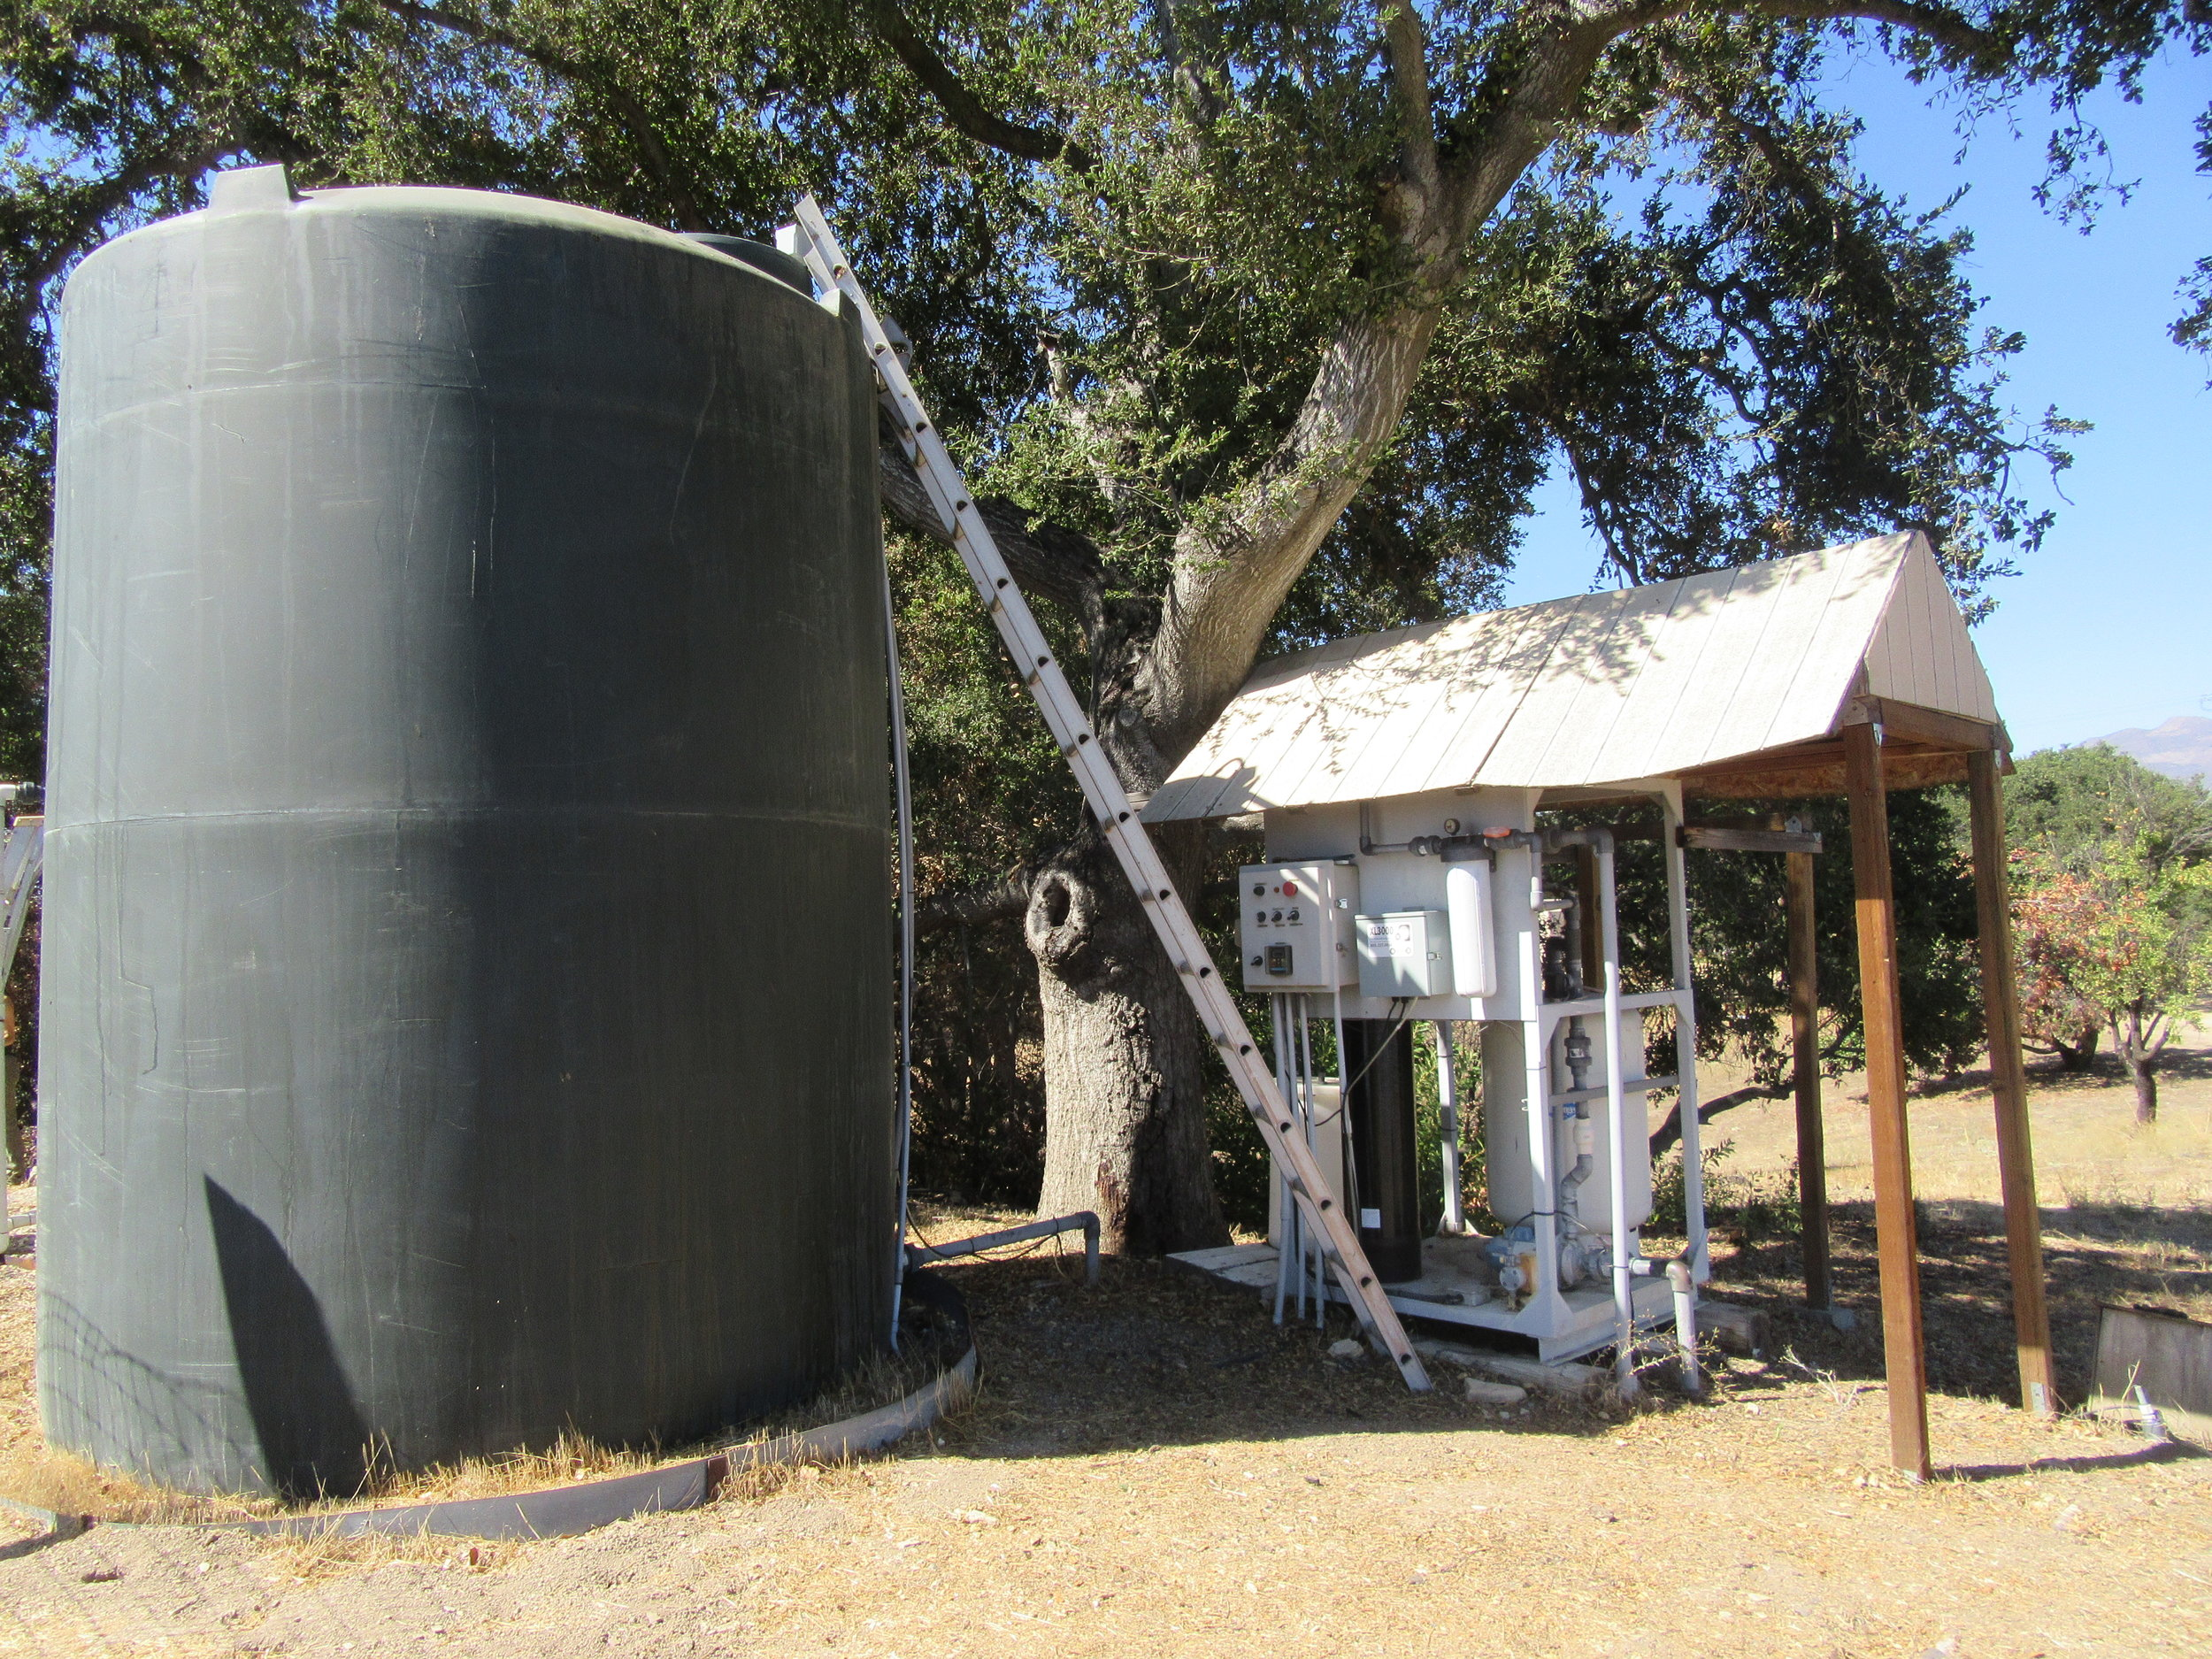 """ONE OF TWO WATER TANKS next to the upgraded water treatment system for Meher Mount's well water. This large tank holds potable water, while a smaller """"ag tank"""" holds untreated water for watering plants at the Visitor Center and Baba's Tree. (Photo: Margaret Magnus, September 2018)"""